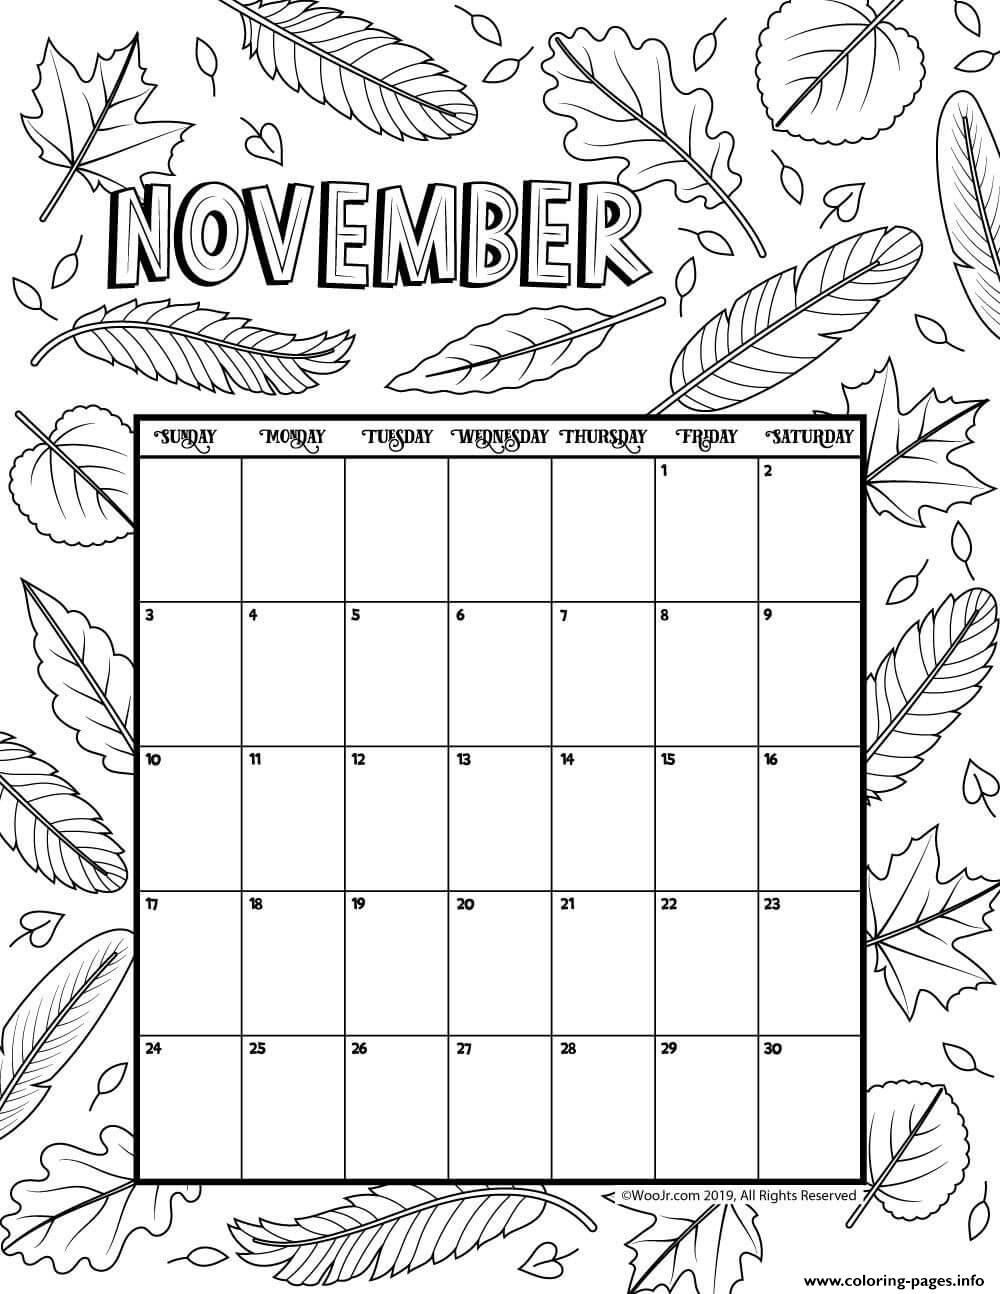 November Coloring Calendar 2019 Coloring Pages Printable